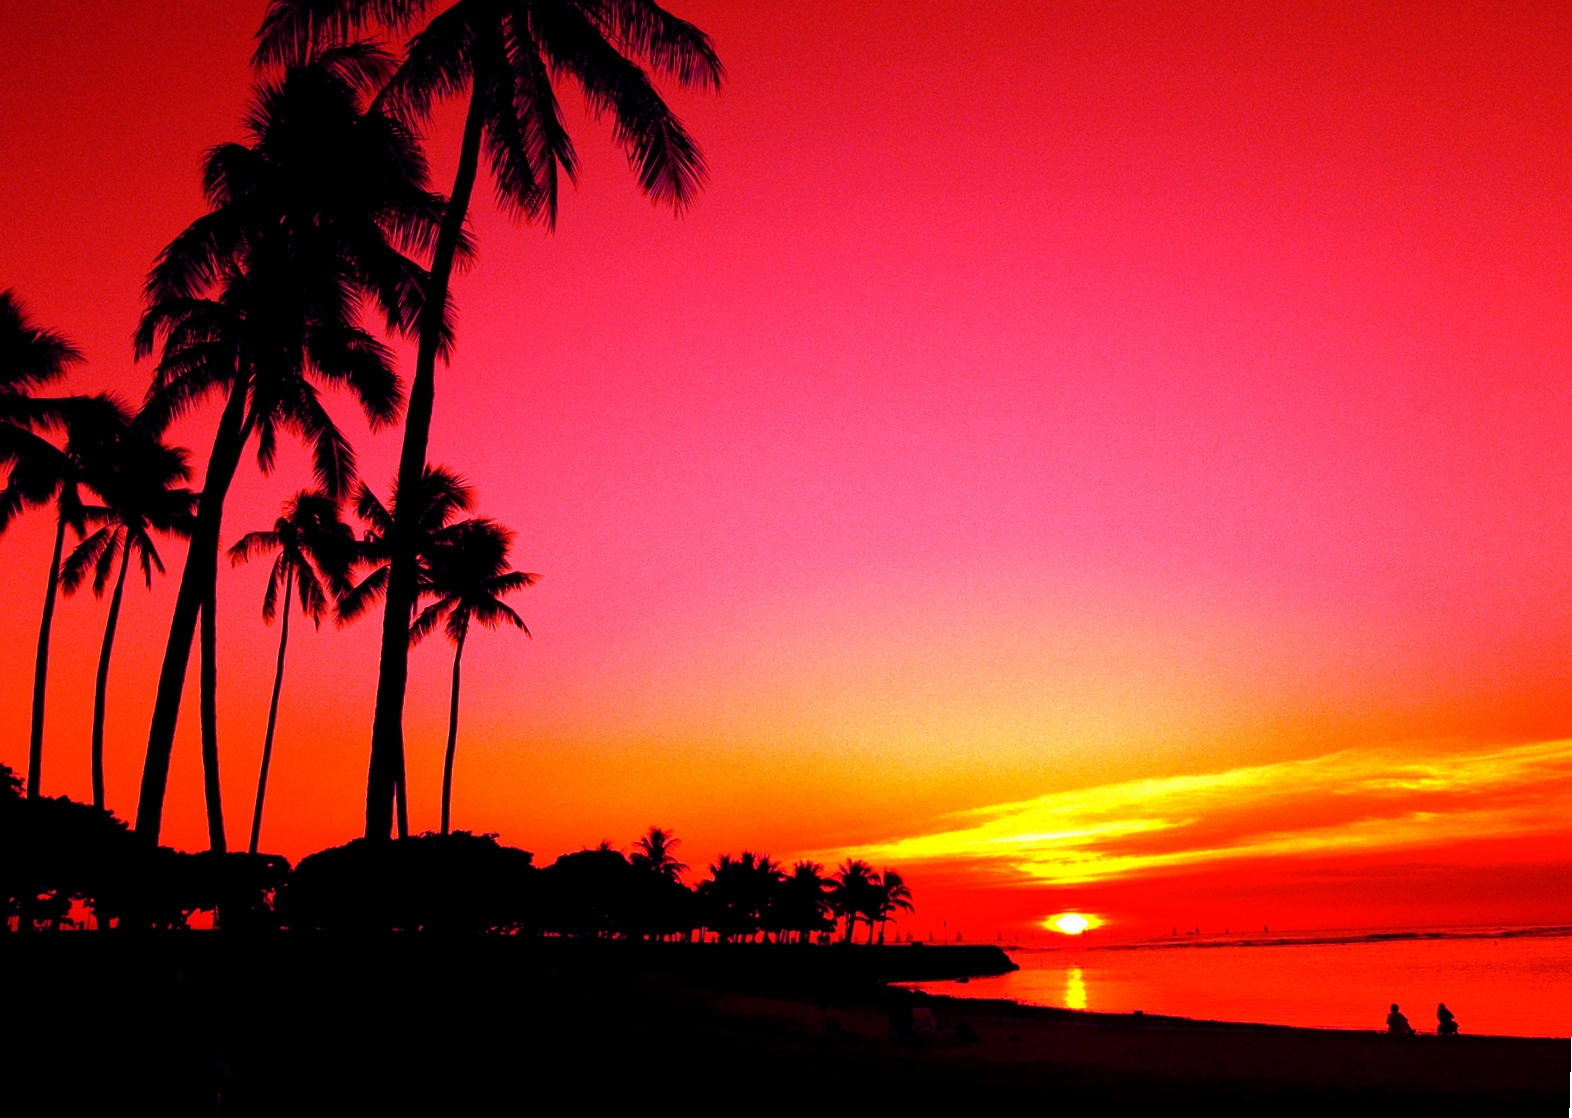 Sunset And Palm Trees Edit 2 By Mellowax